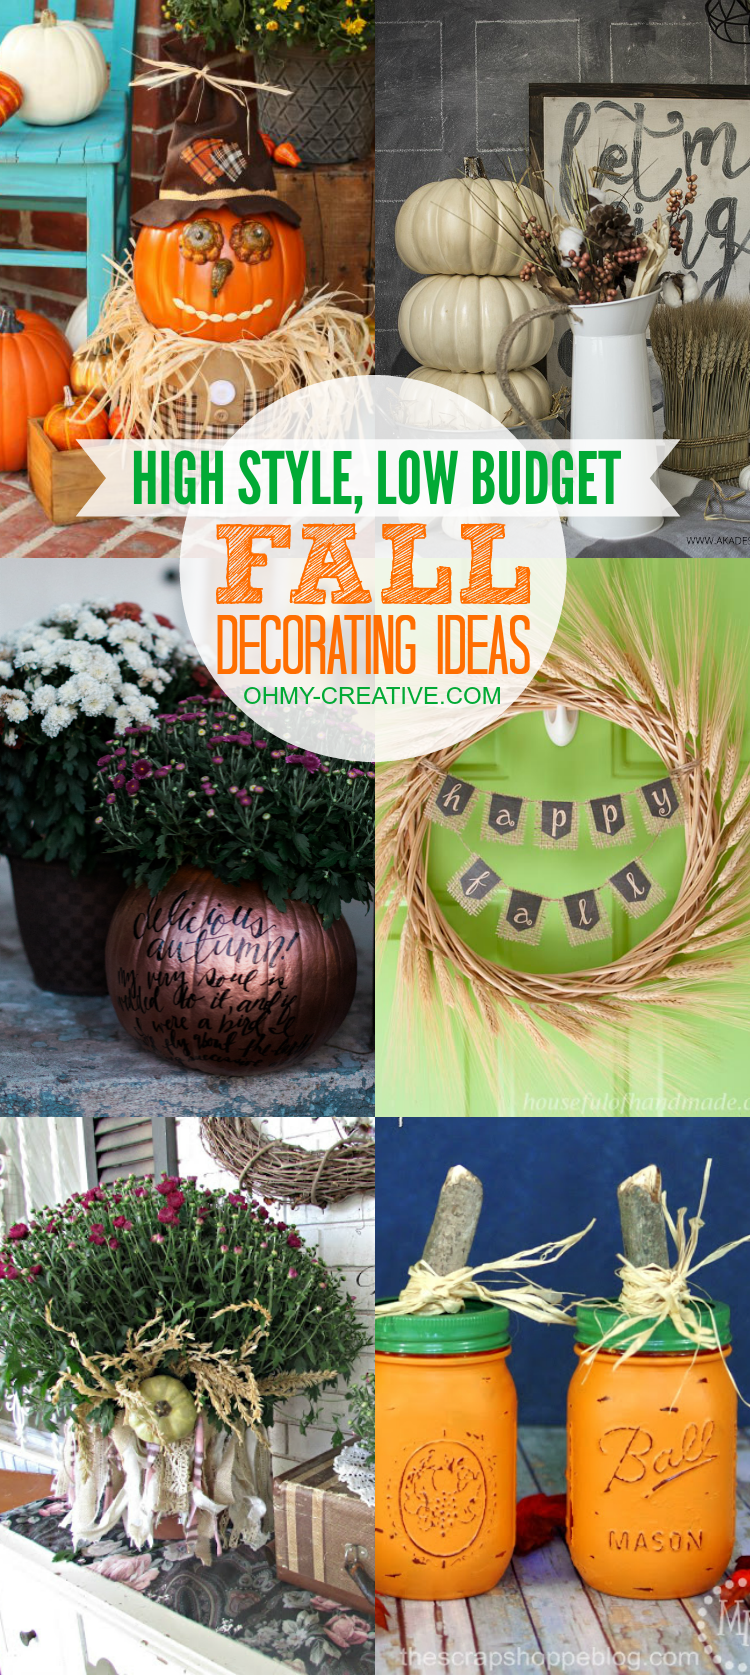 Anytime you can create something yourself you will save money! Be inspired to create these Do It Yourself High Style, Low Budget Fall Decorating Ideas for inside and outside your home! | OHMY-CREATIVE.COM